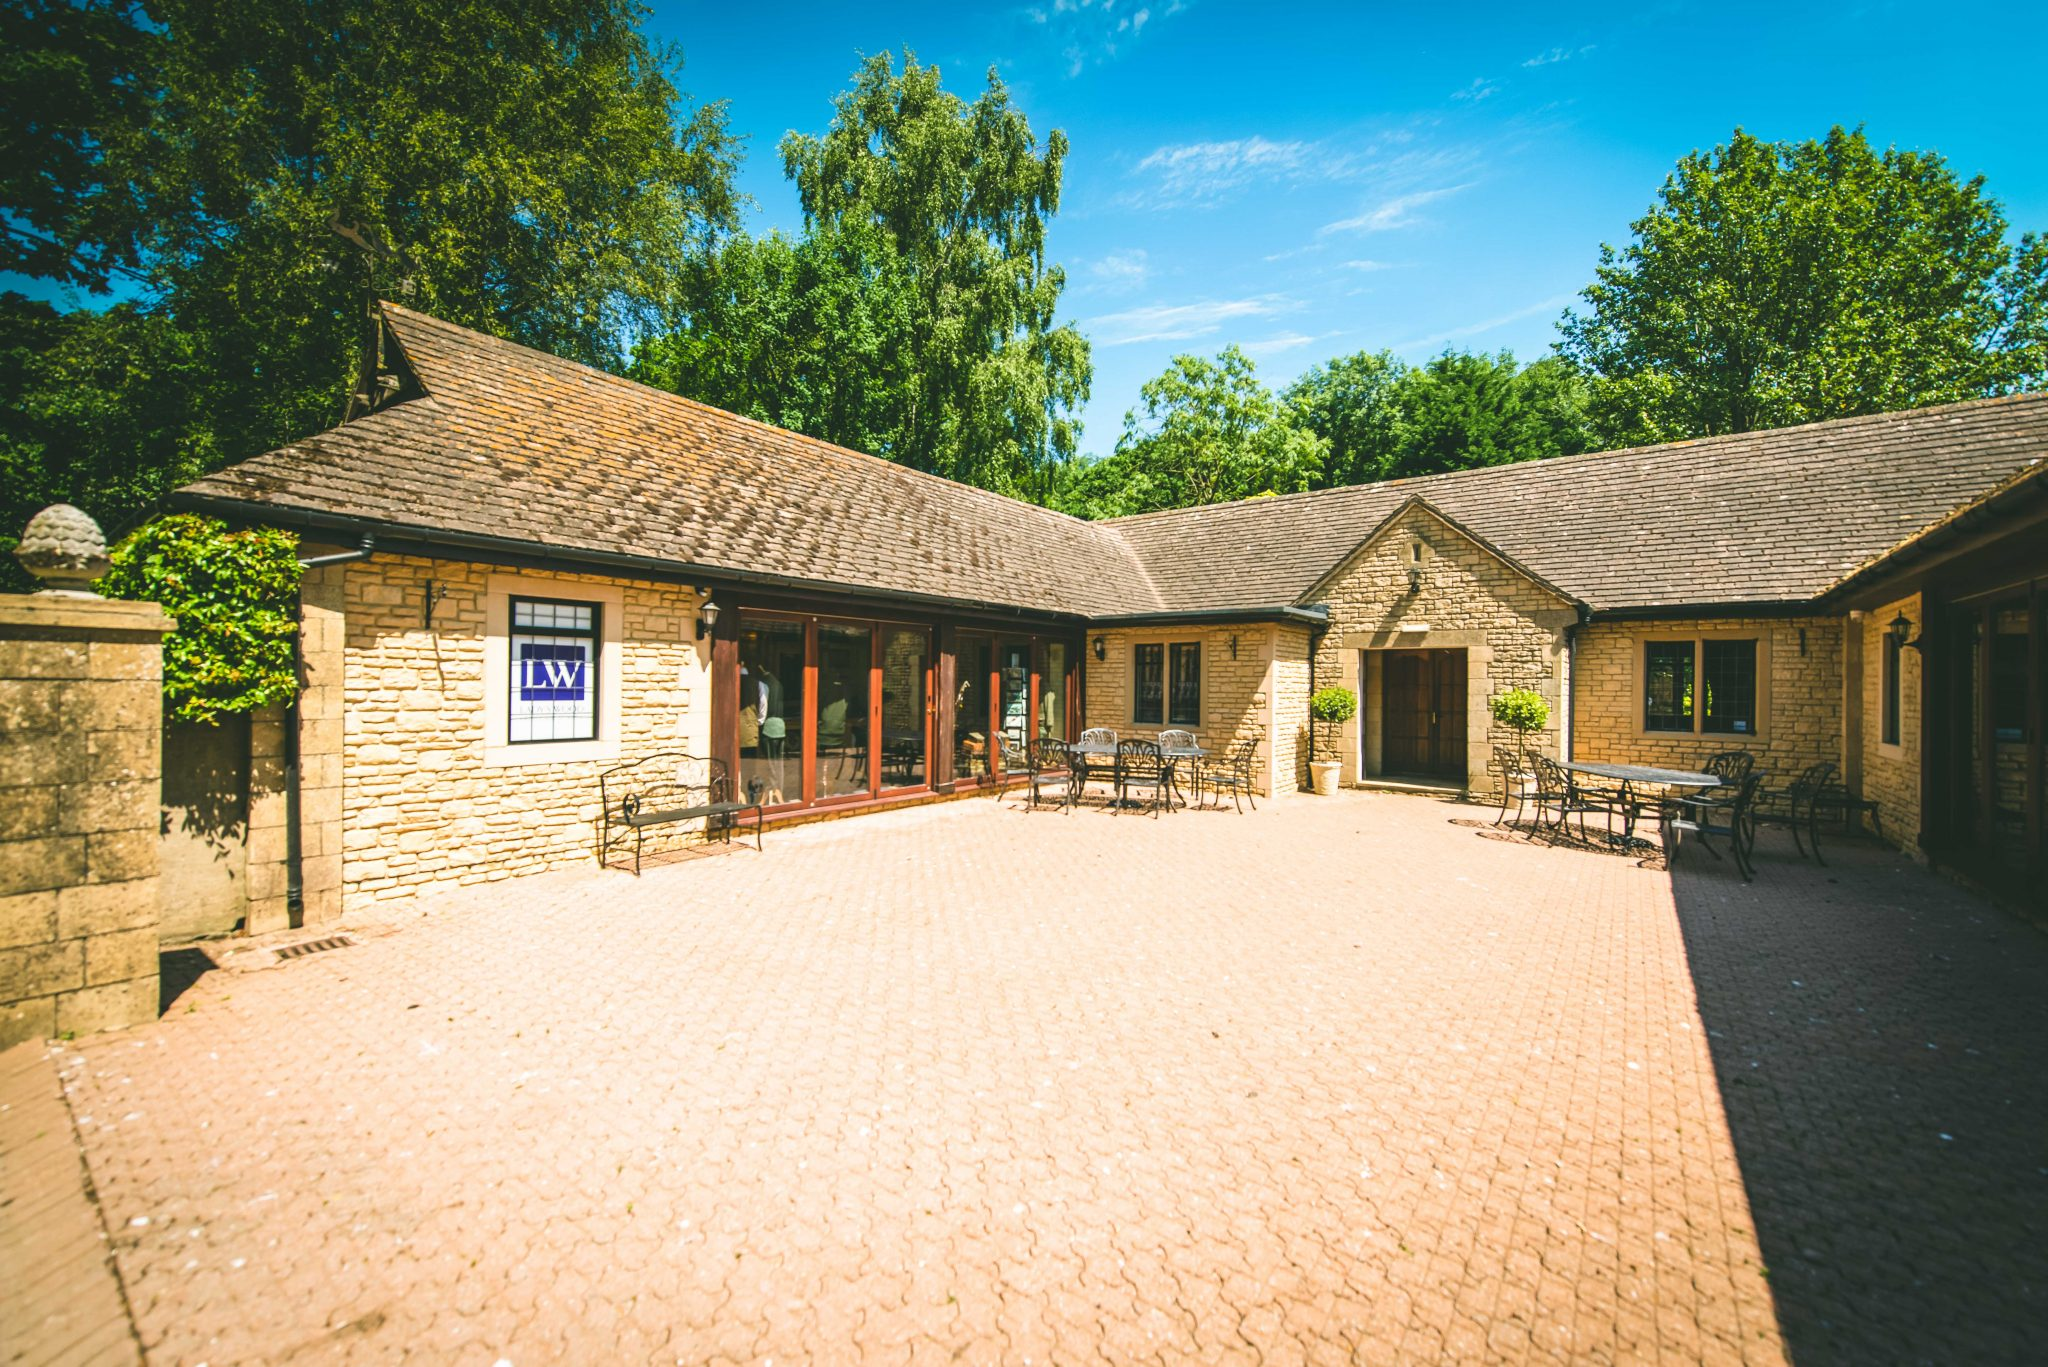 Lady's Wood Shooting School's reopening plans